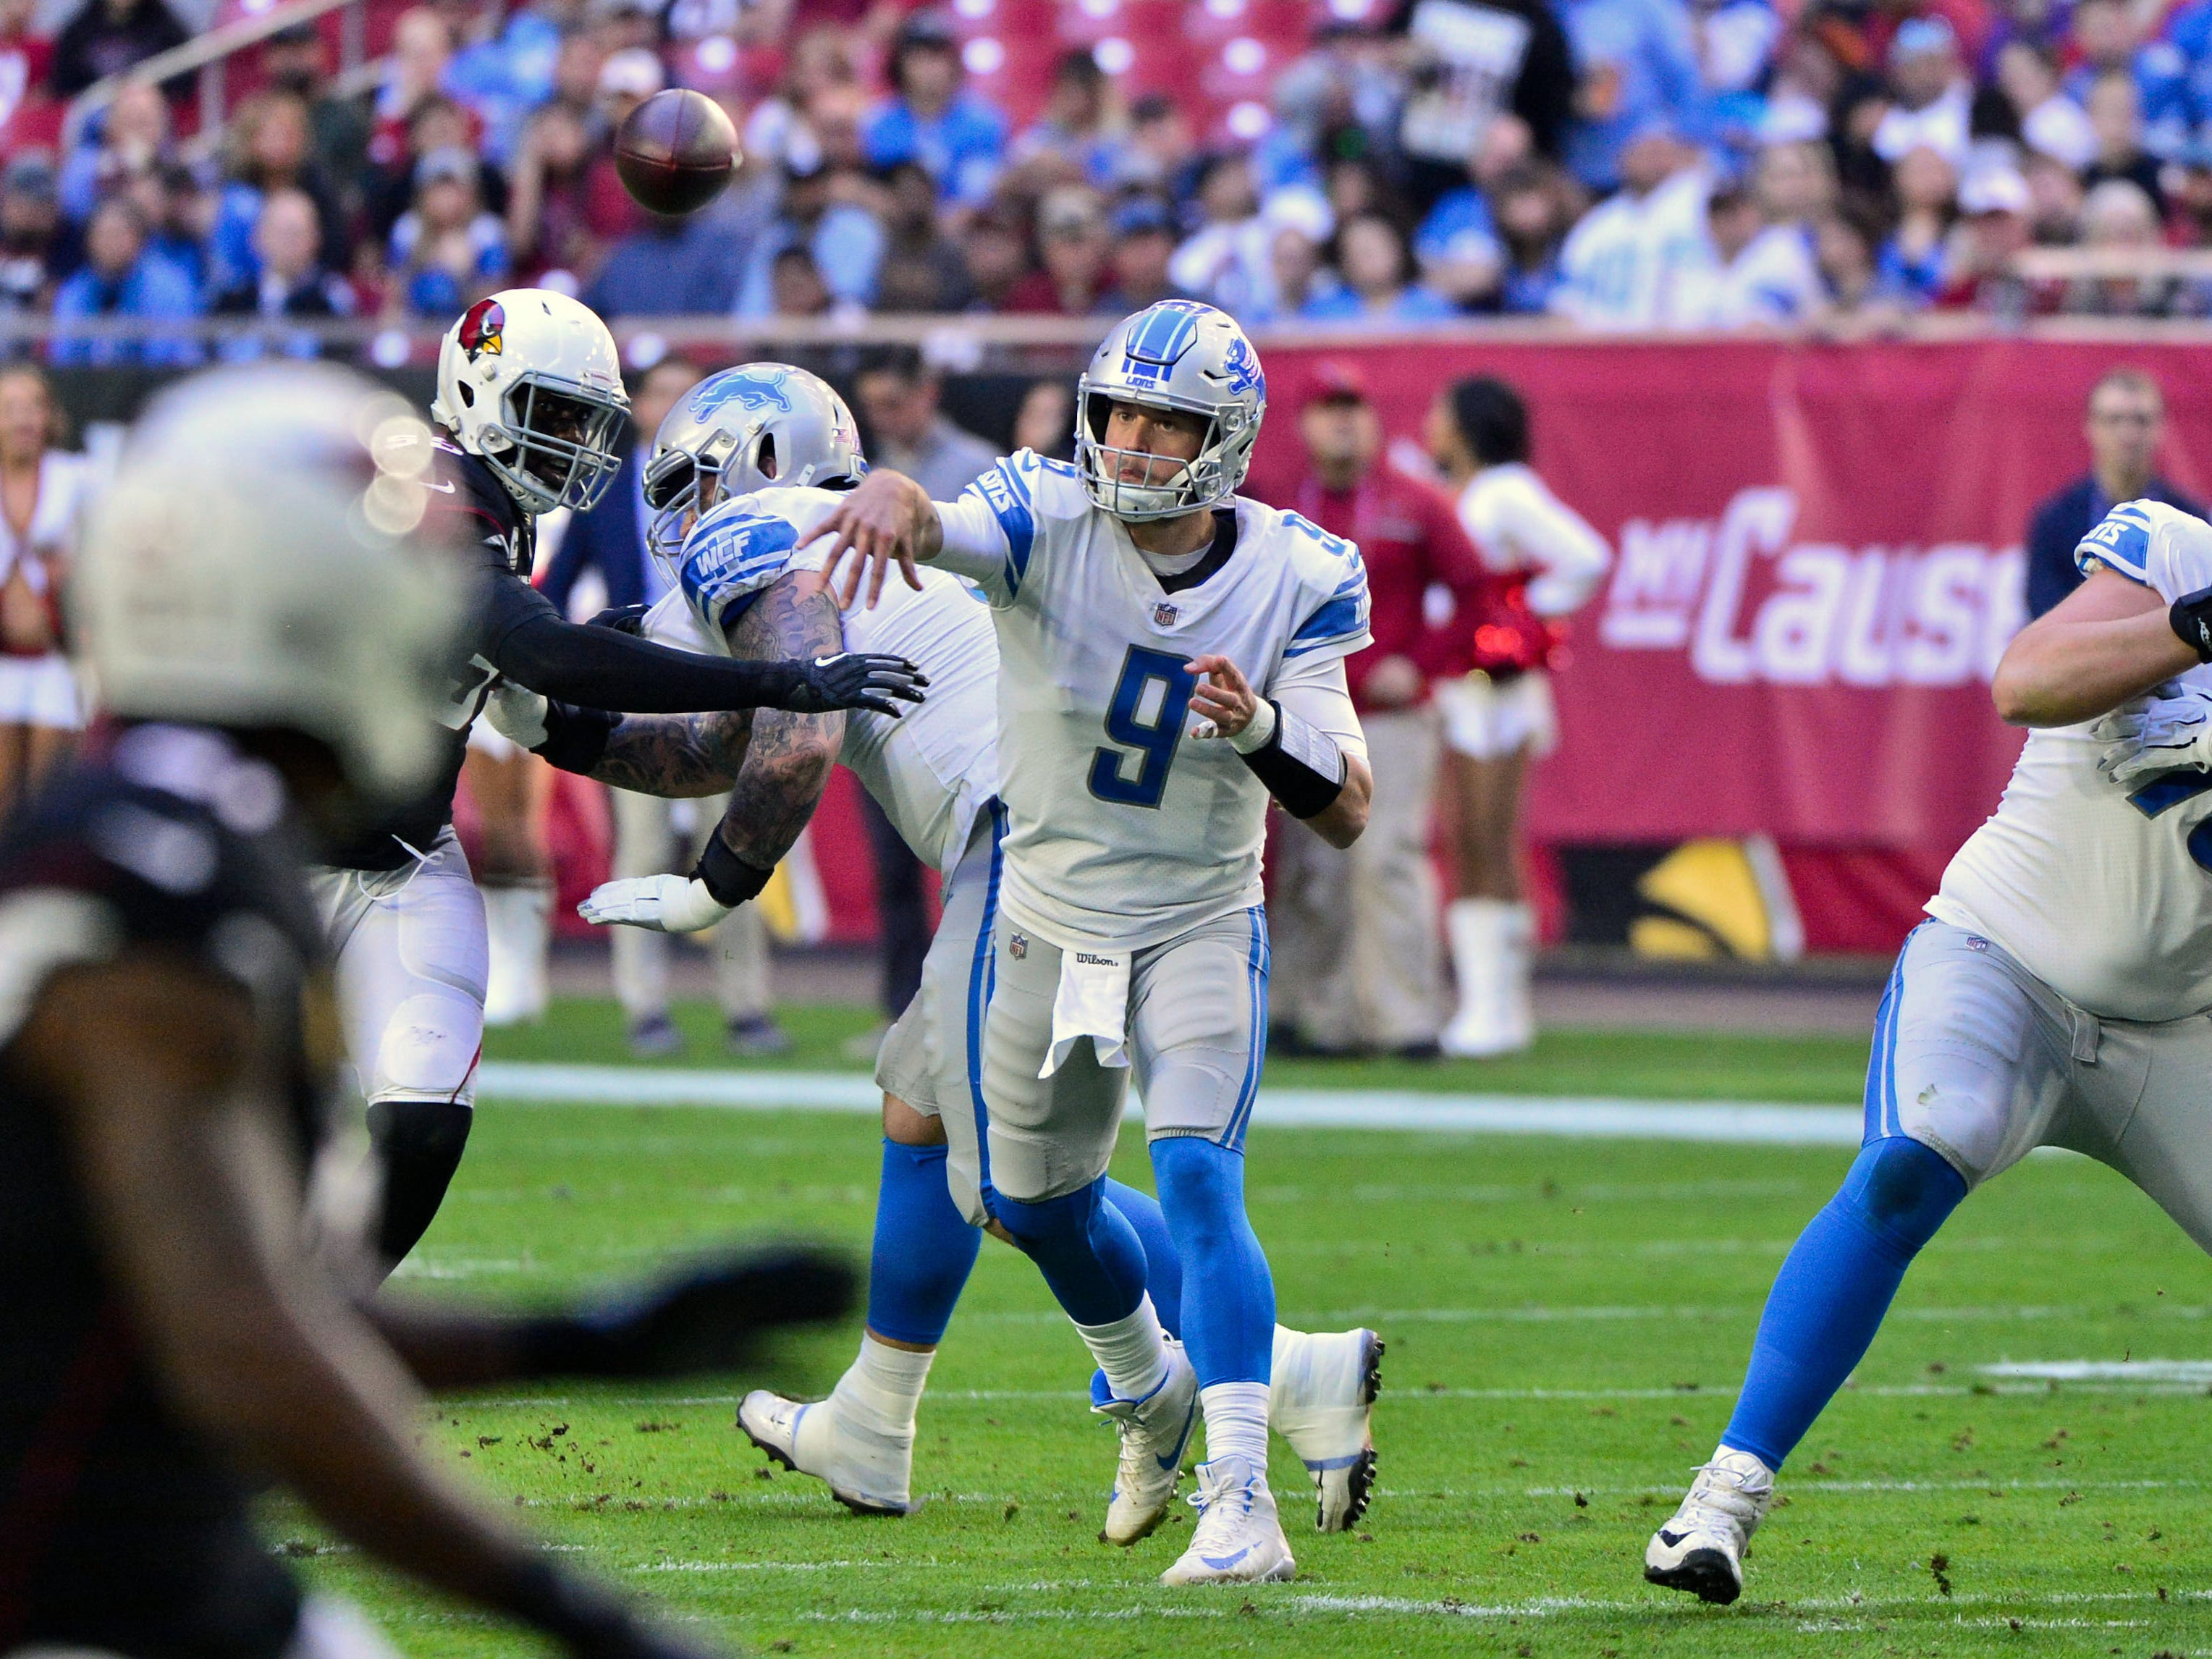 Dec 9, 2018; Glendale, AZ, USA; Detroit Lions quarterback Matthew Stafford (9) throws during the first half against the Arizona Cardinals at State Farm Stadium. Mandatory Credit: Matt Kartozian-USA TODAY Sports